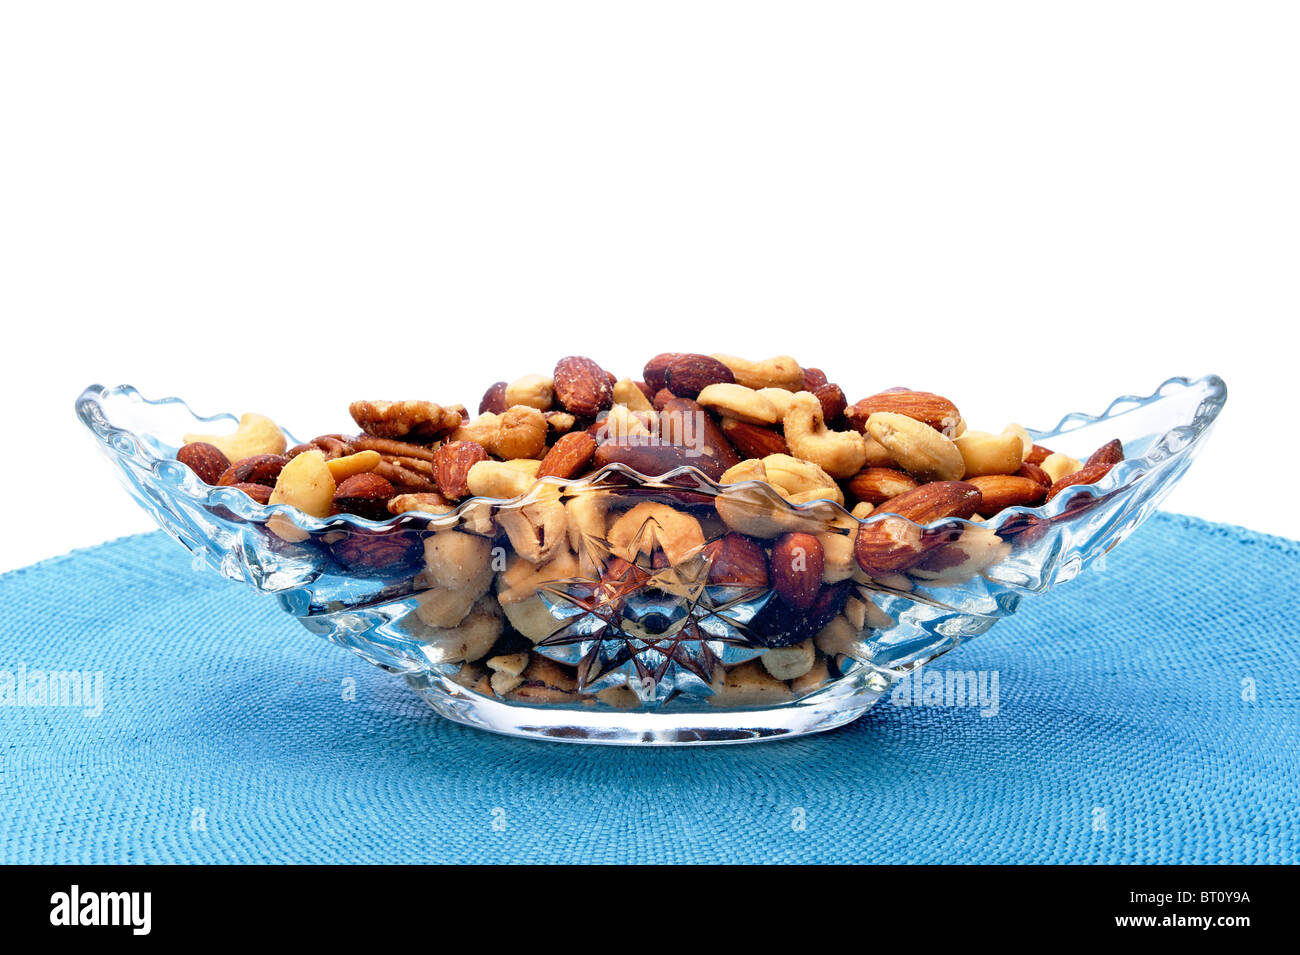 A serving dish full of mixed nuts - Stock Image